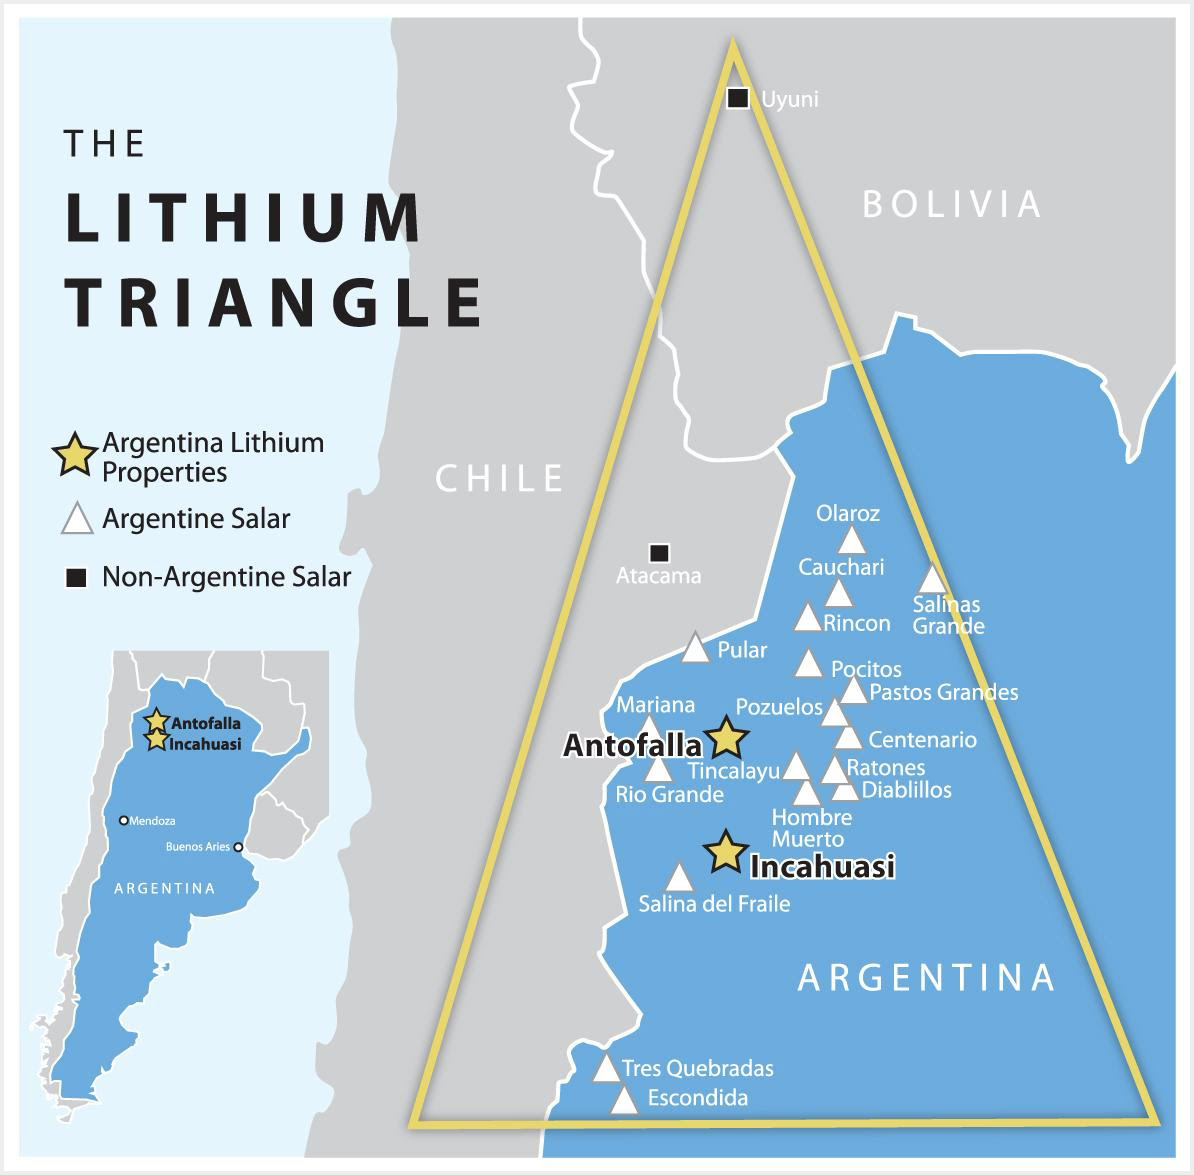 lithium triangle map